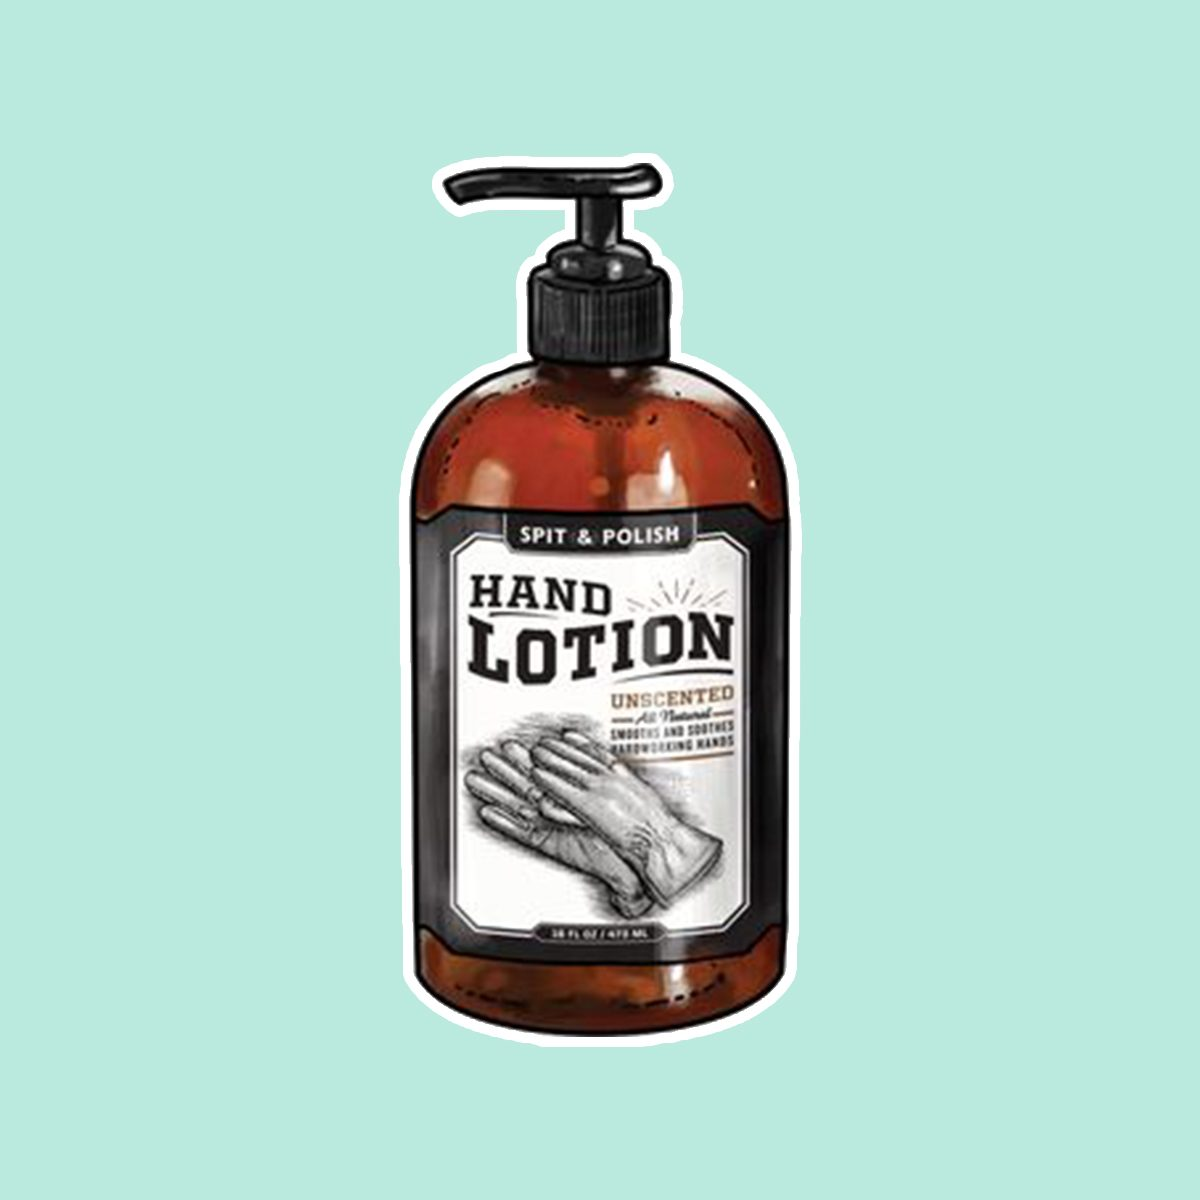 Spit & Polish Unscented Hand Lotion